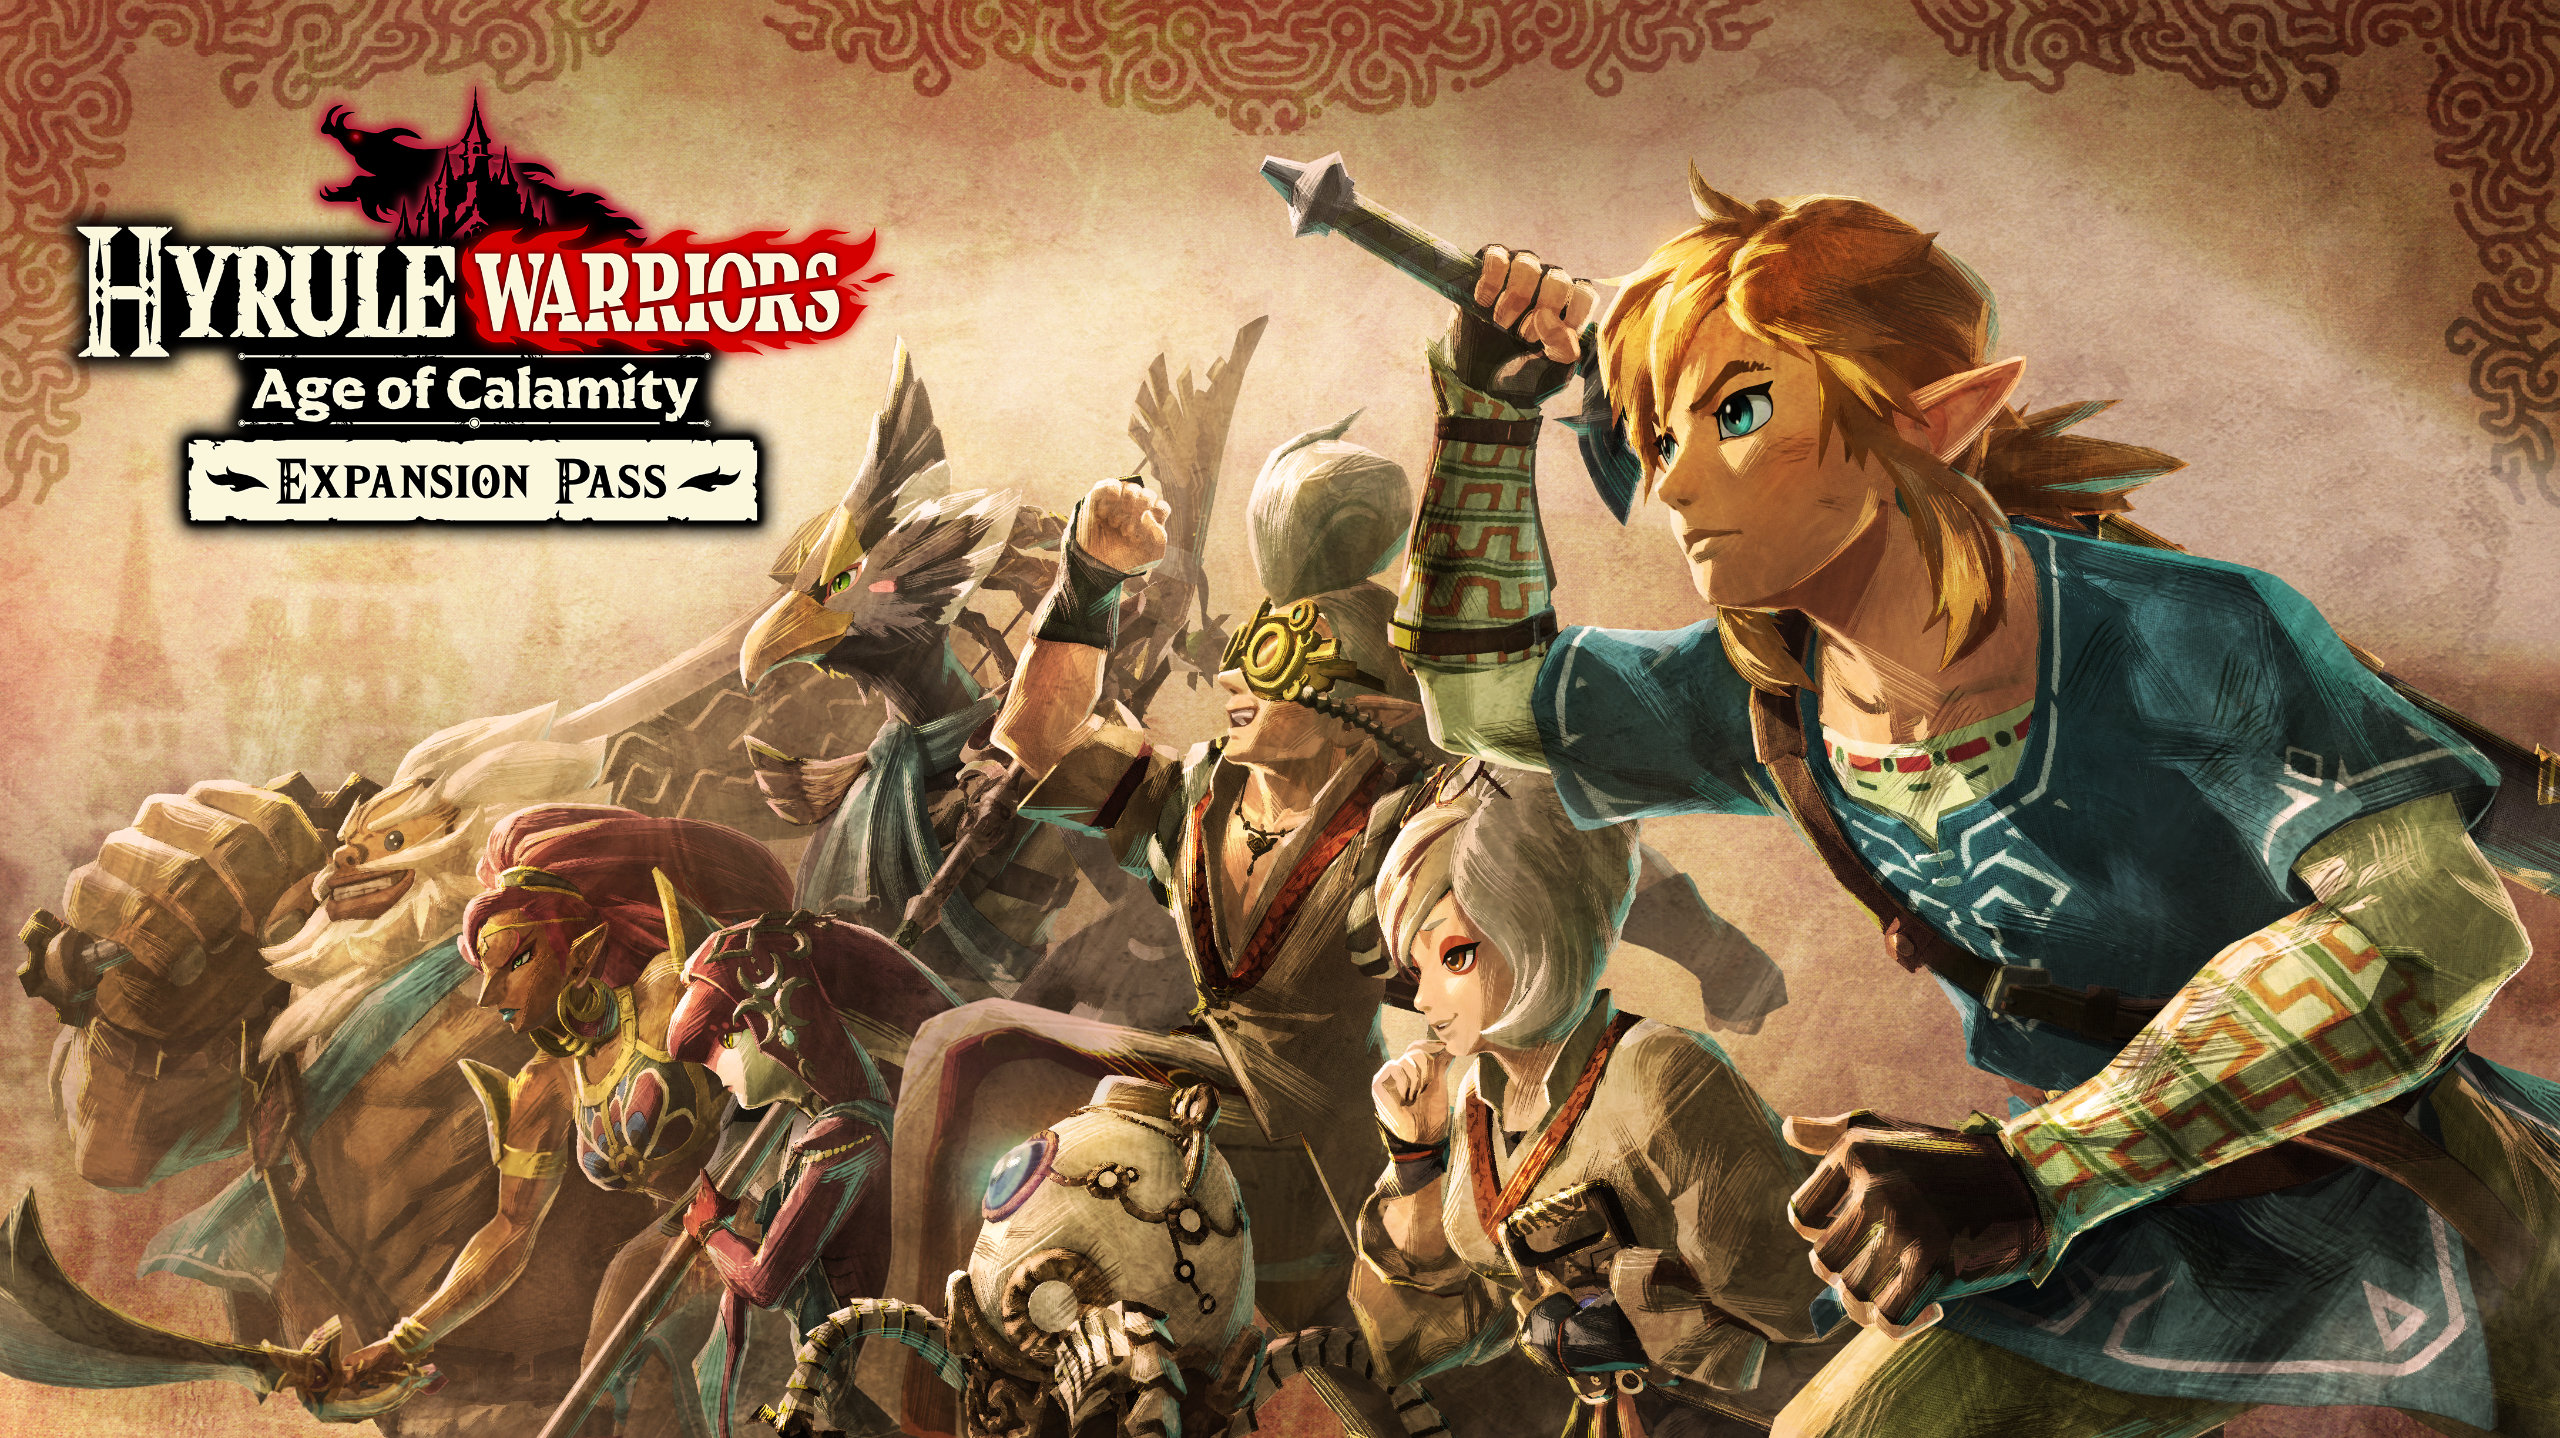 Hyrule Warriors: Age of Calamity DLC Expansion